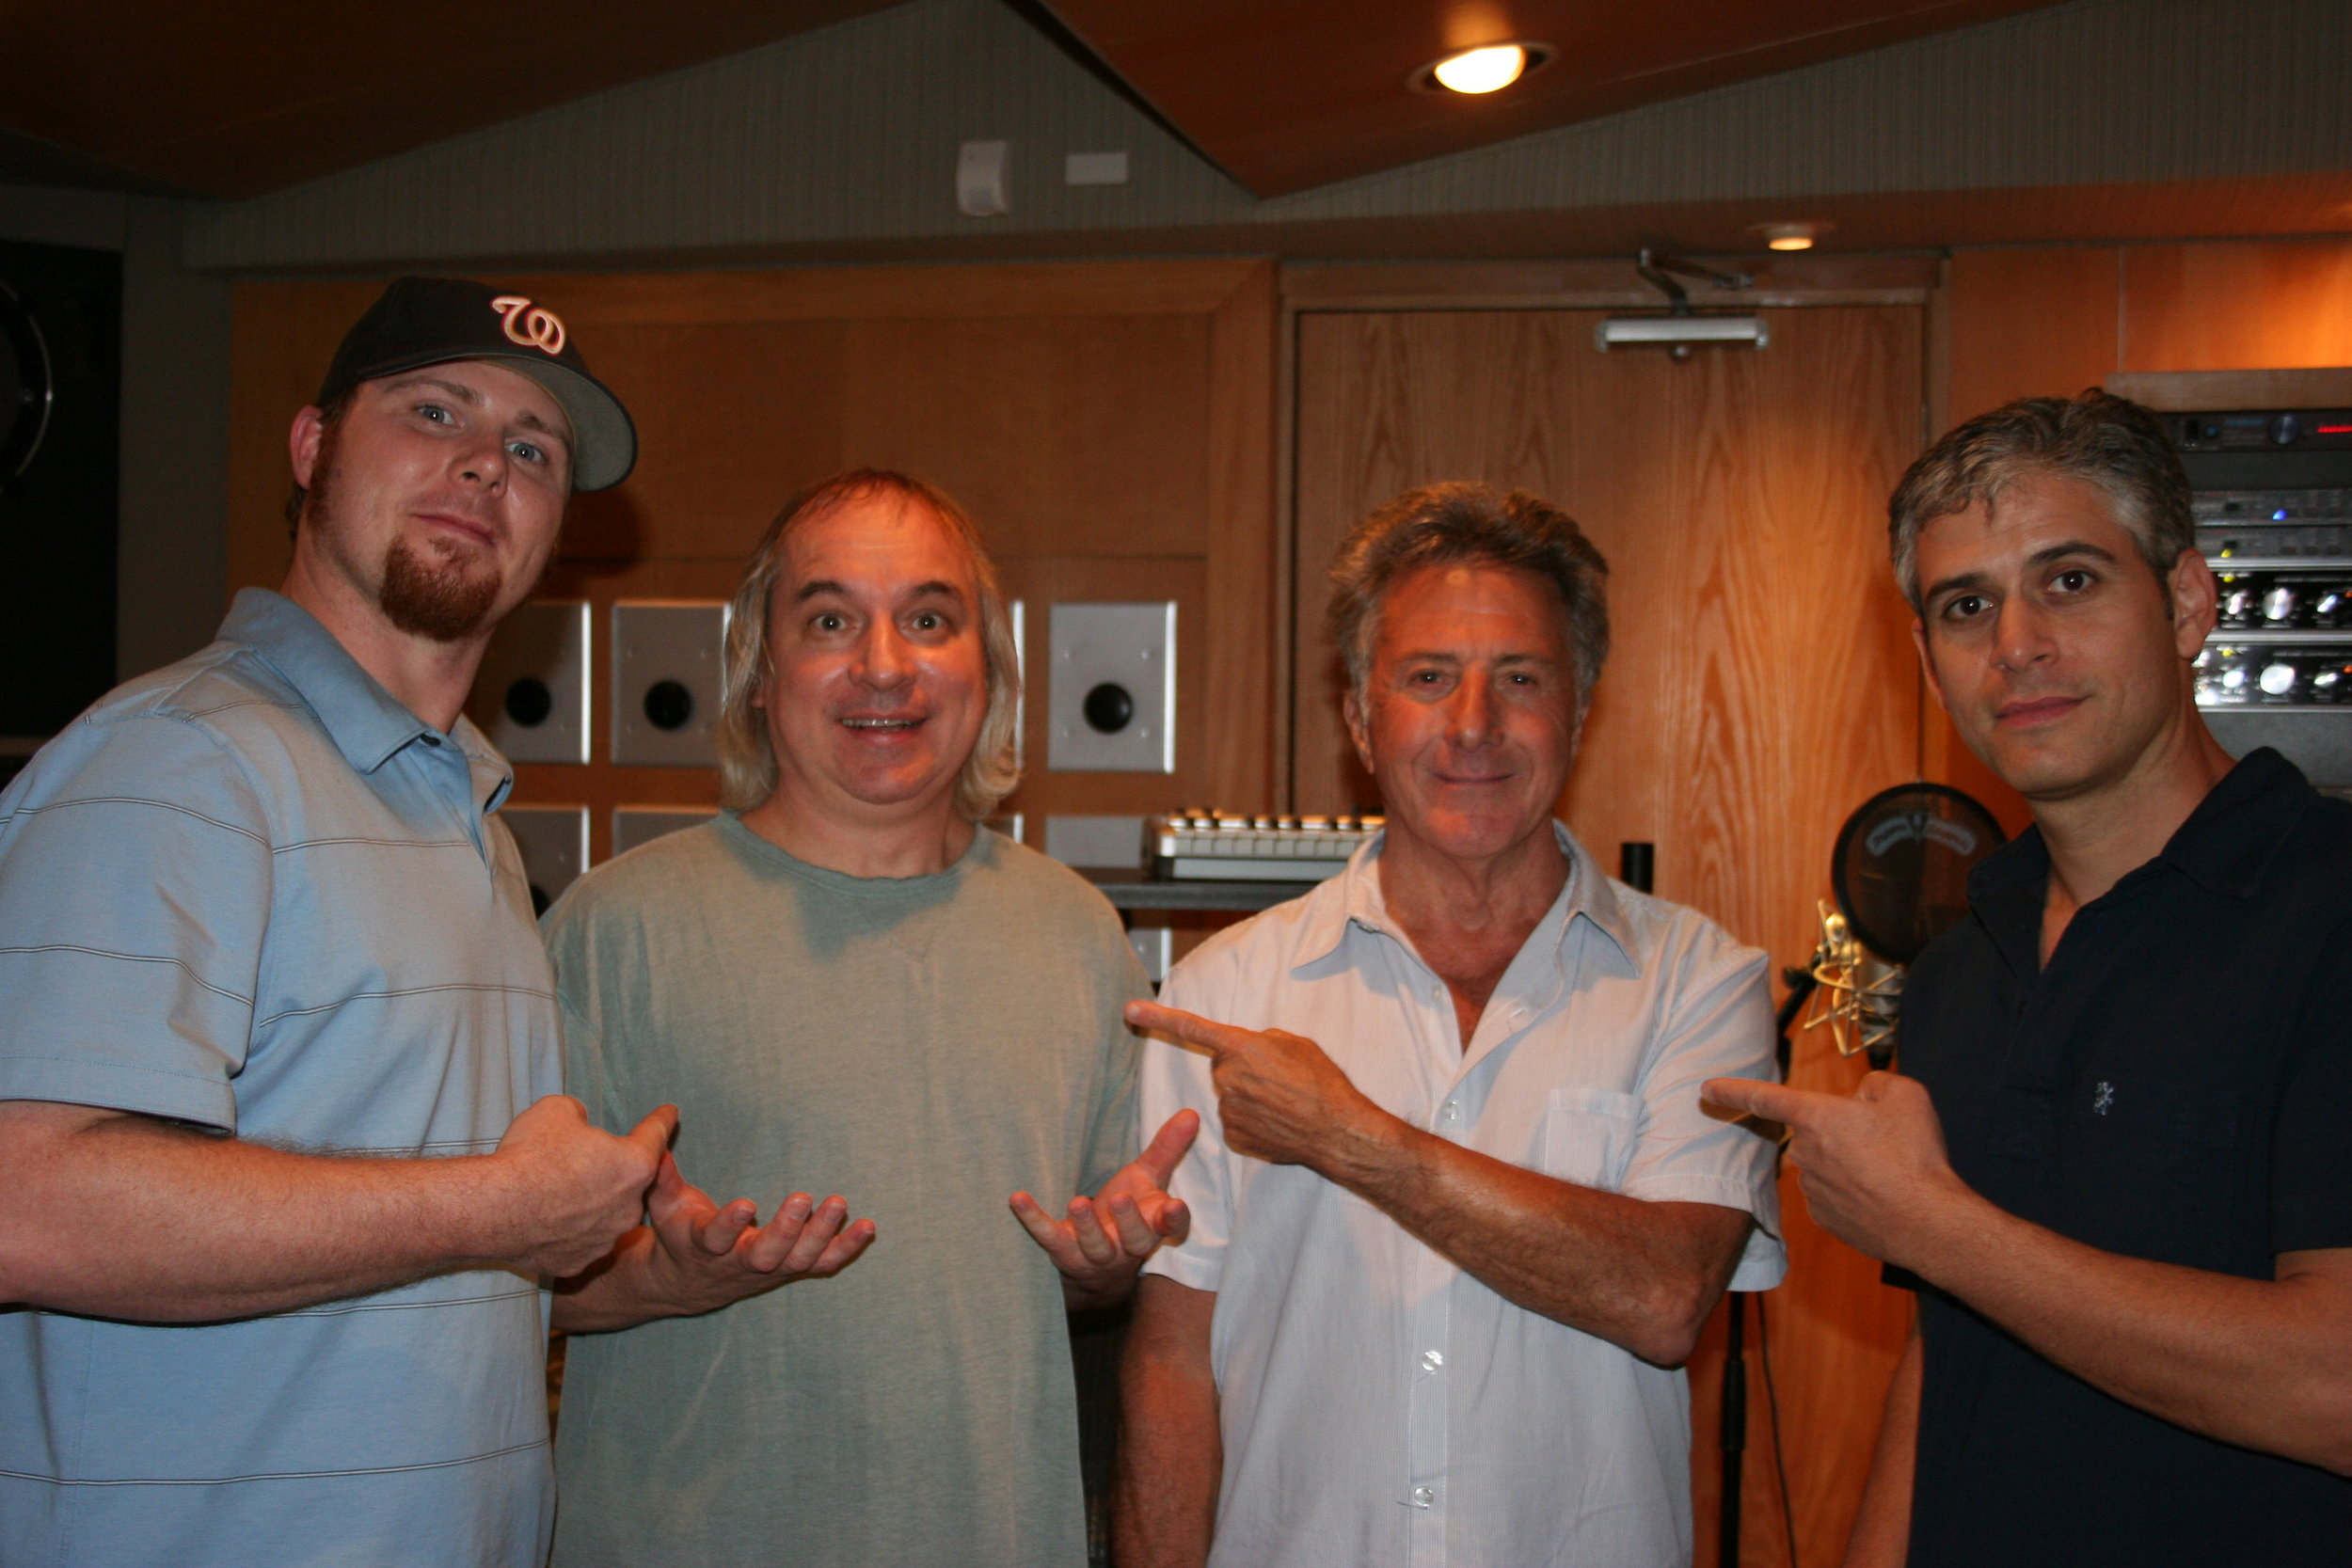 Dustin Hoffman with Eric Bricker and the Threshold crew.